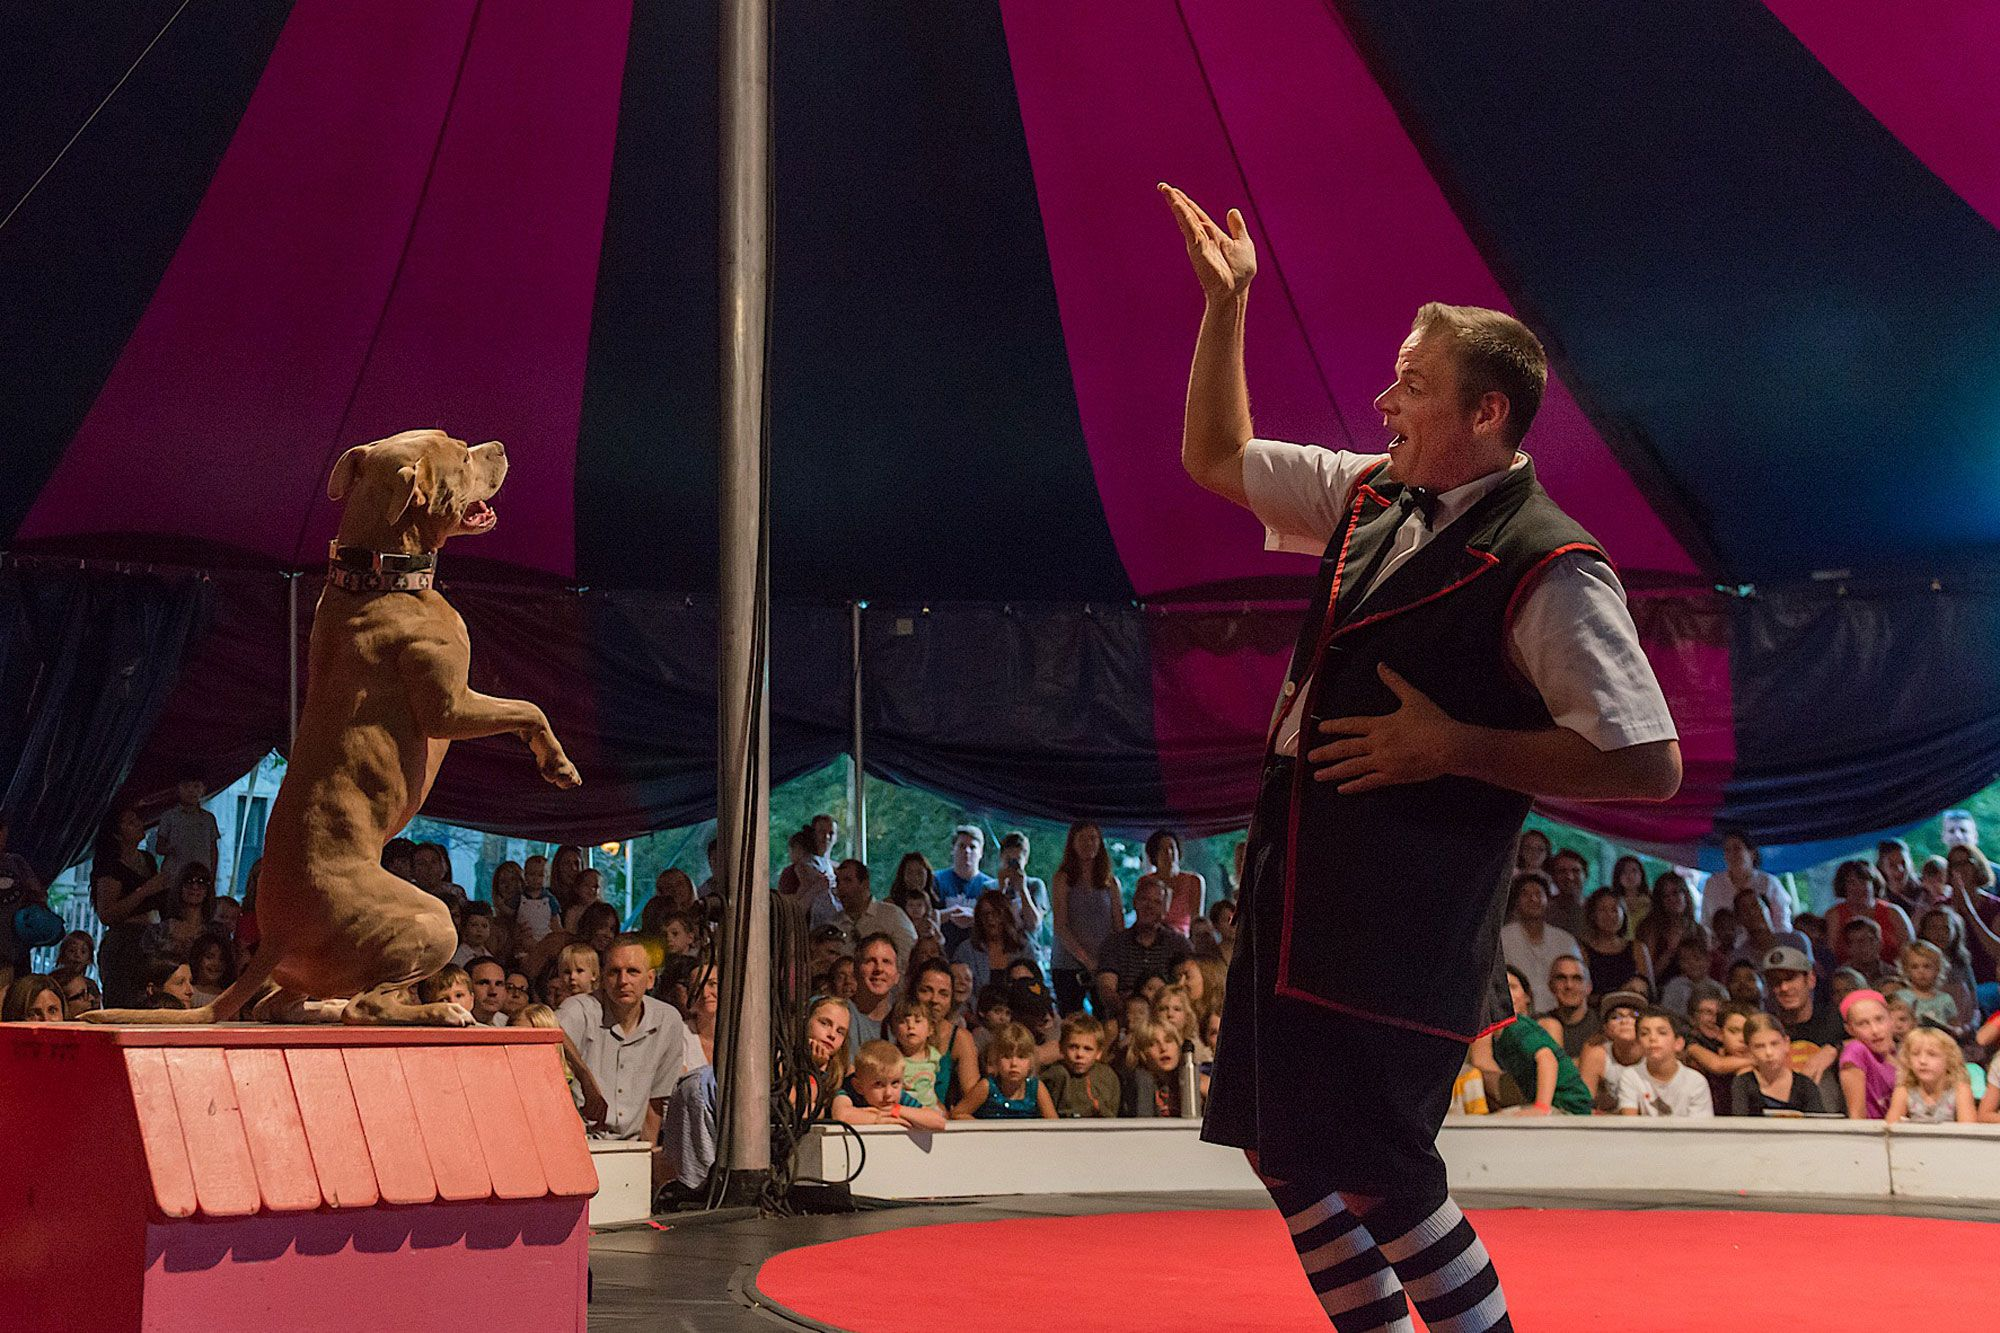 Midnight Circus in the Parks